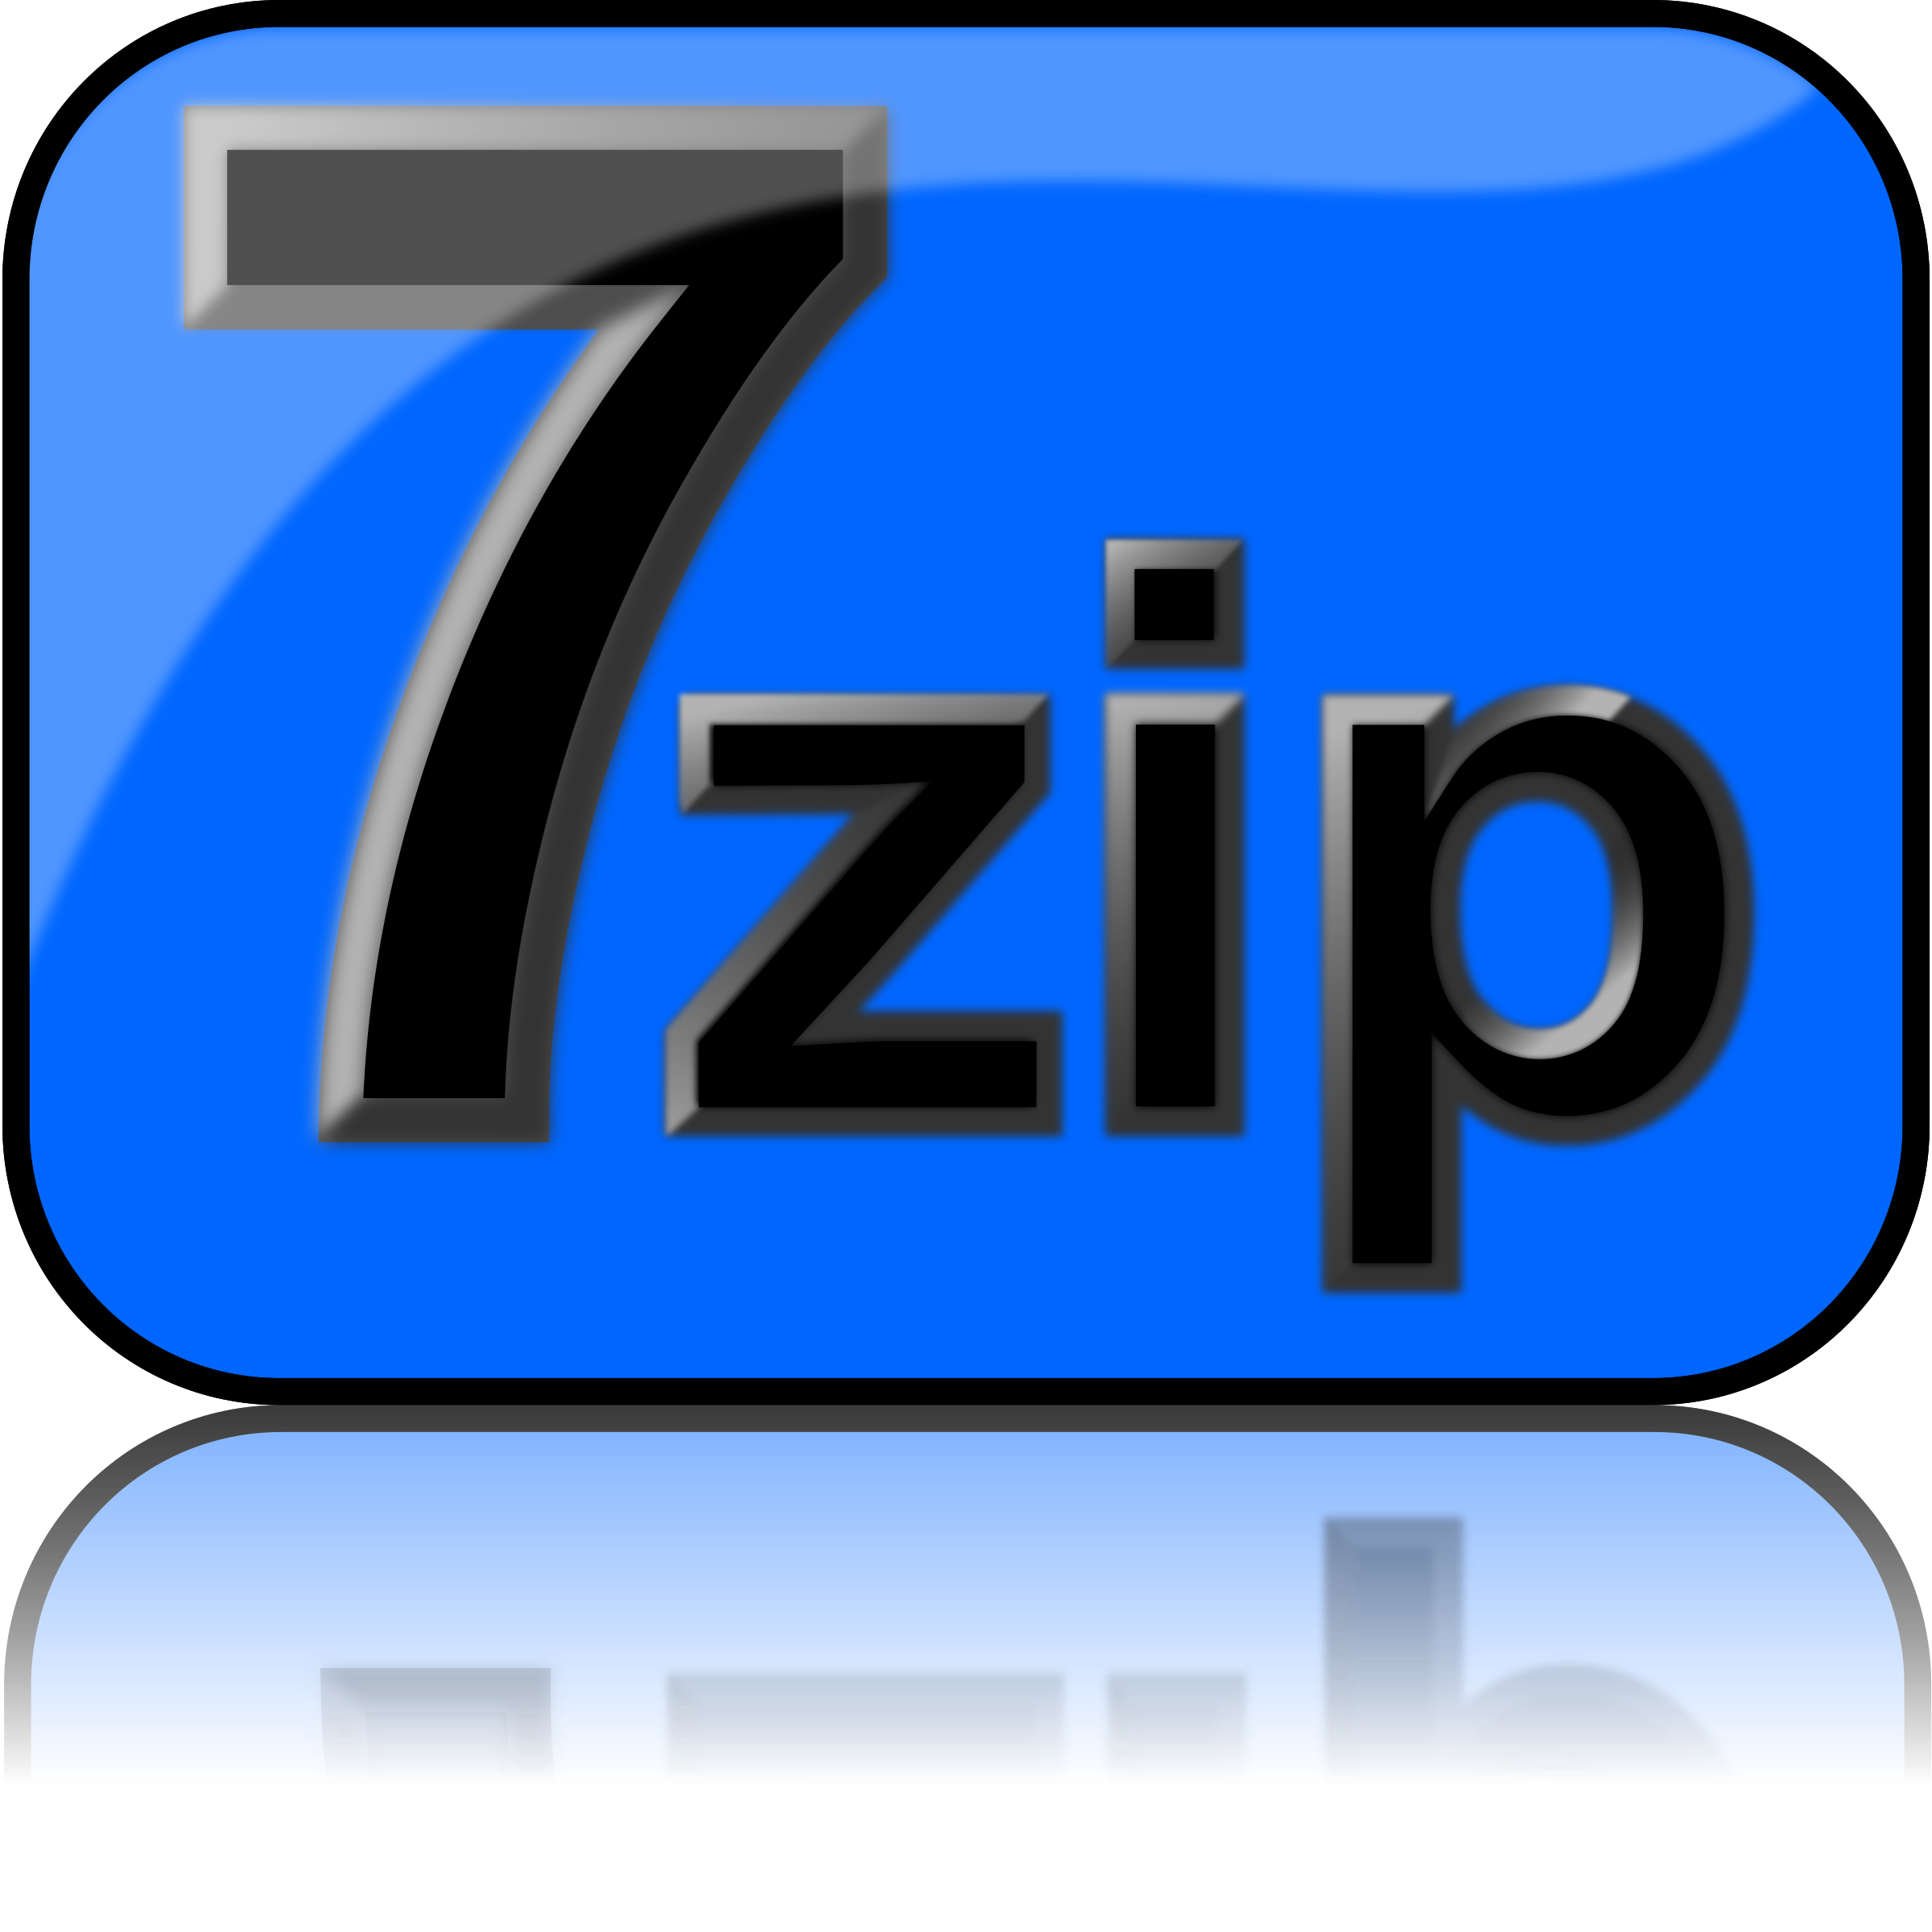 7zip Glossy Extrude Blue by kg